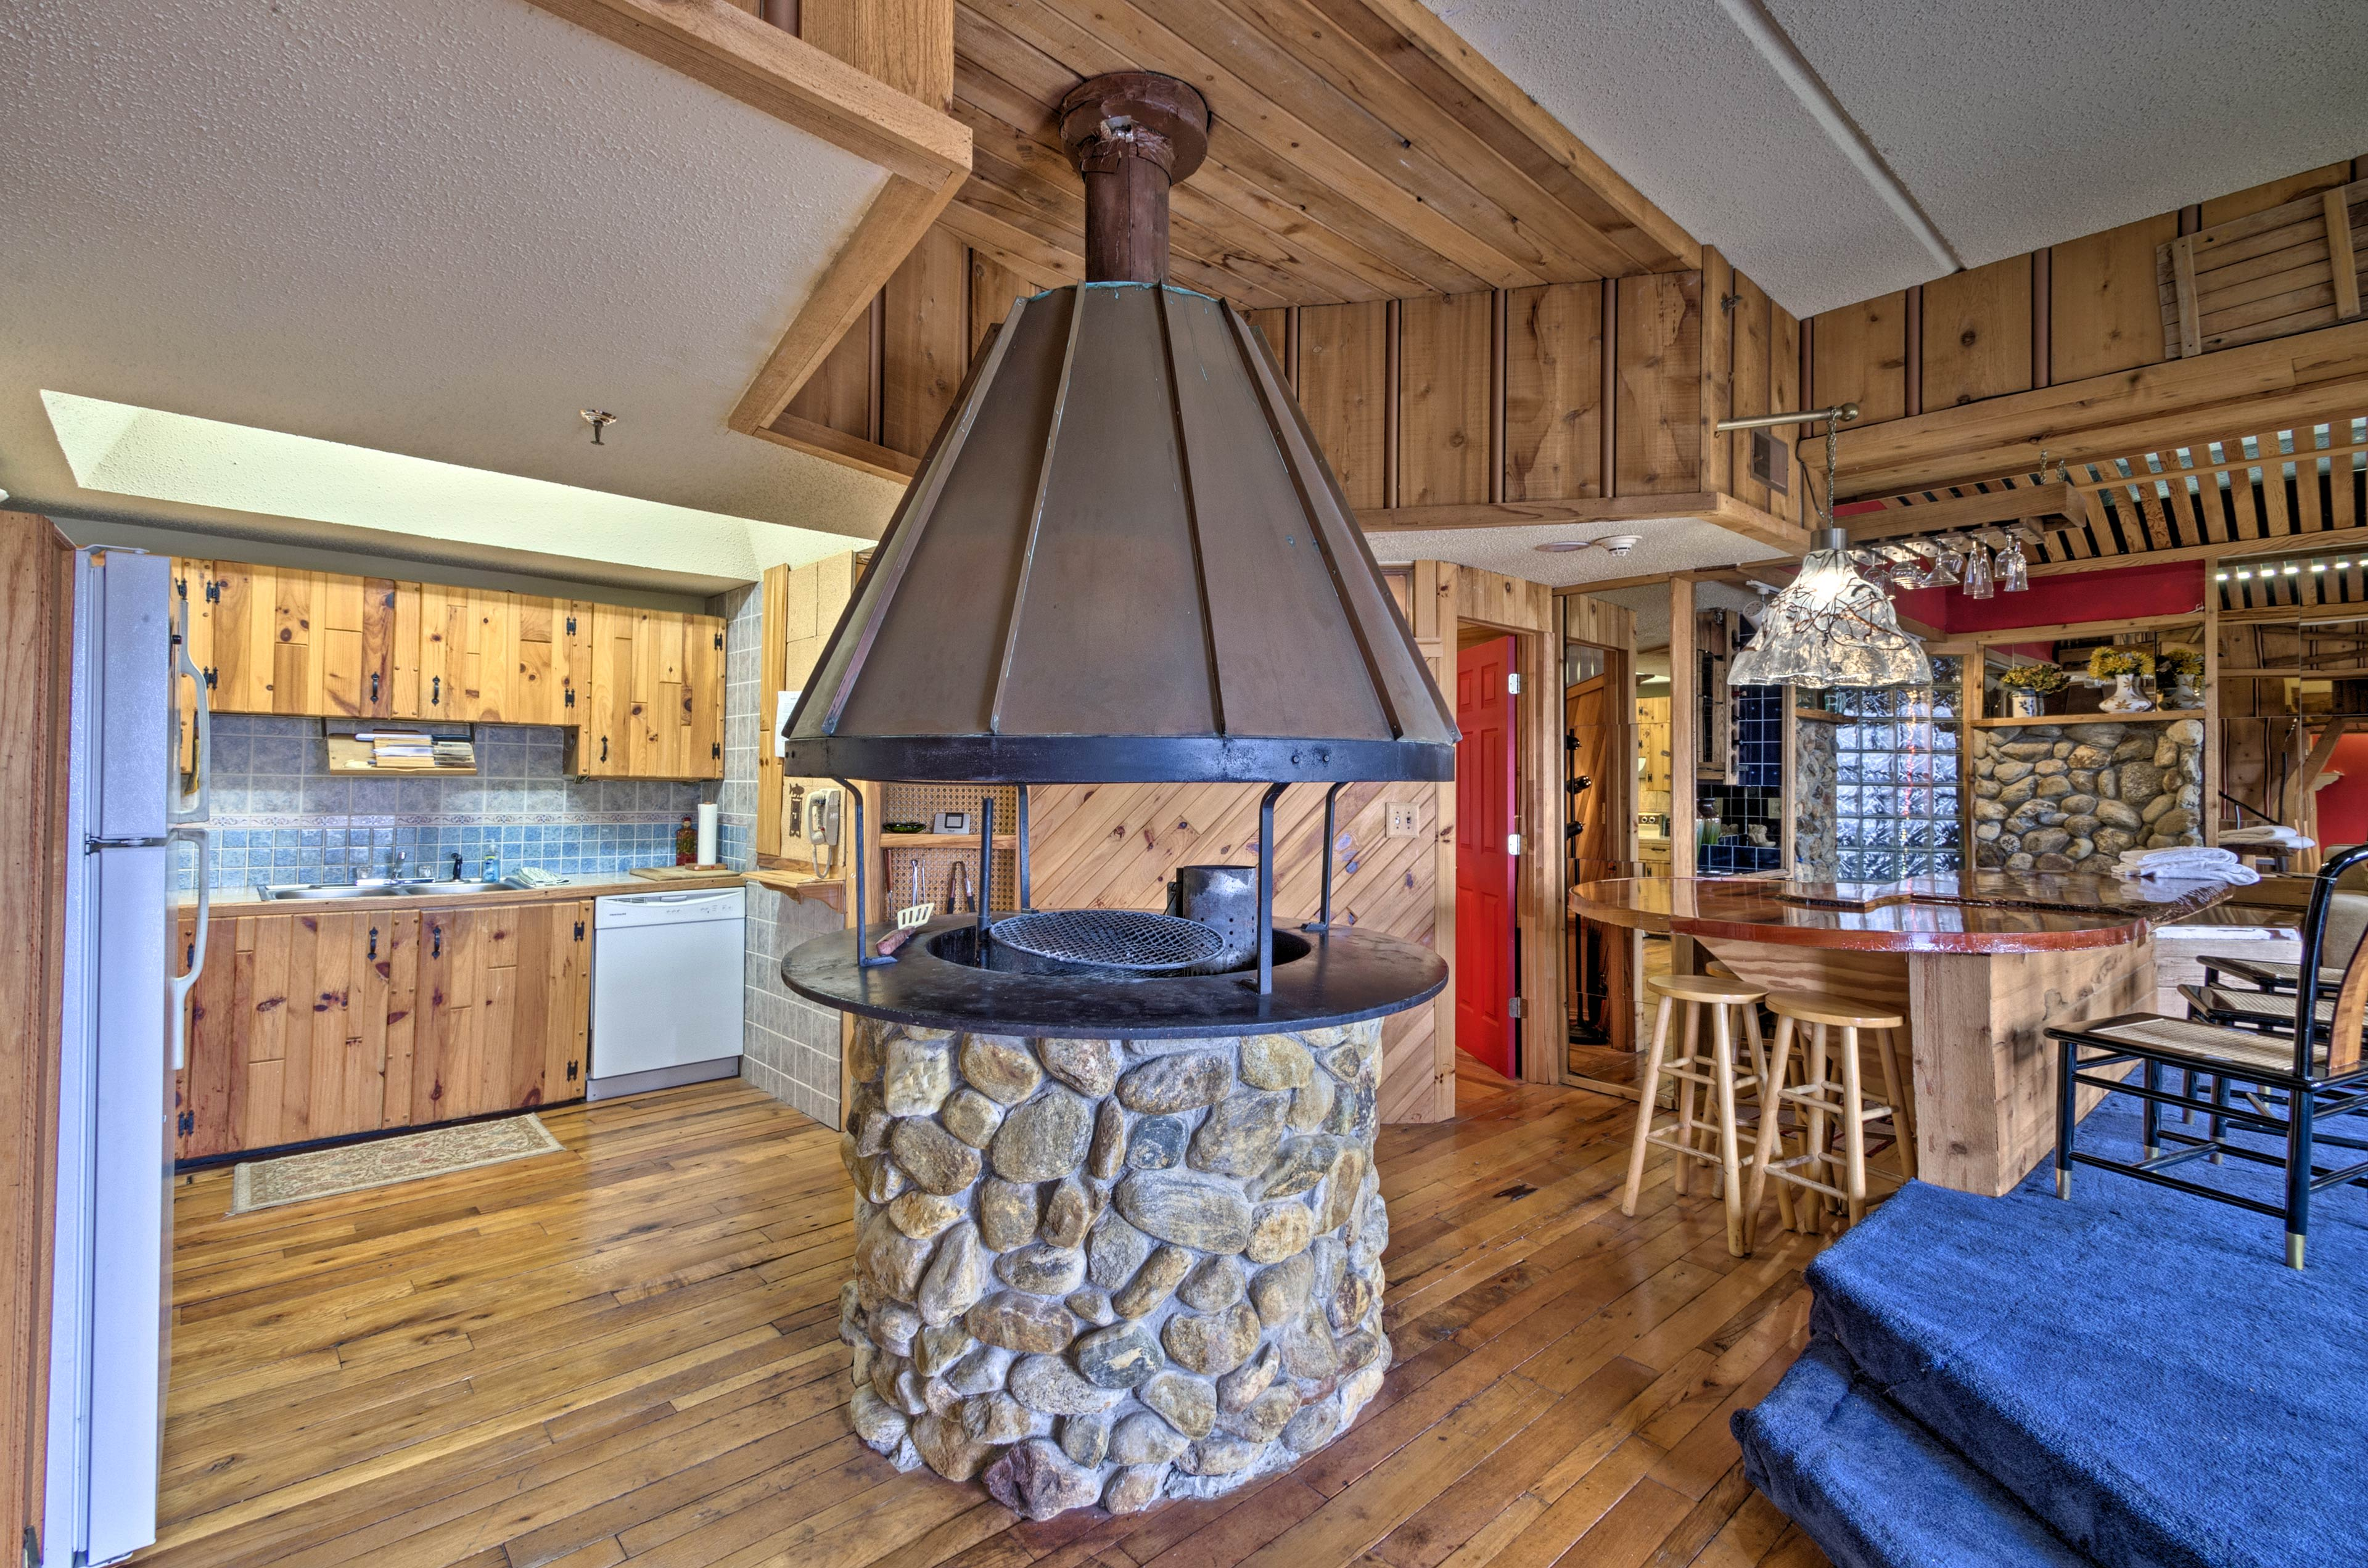 But the indoor charcoal fire pit truly steals the show!